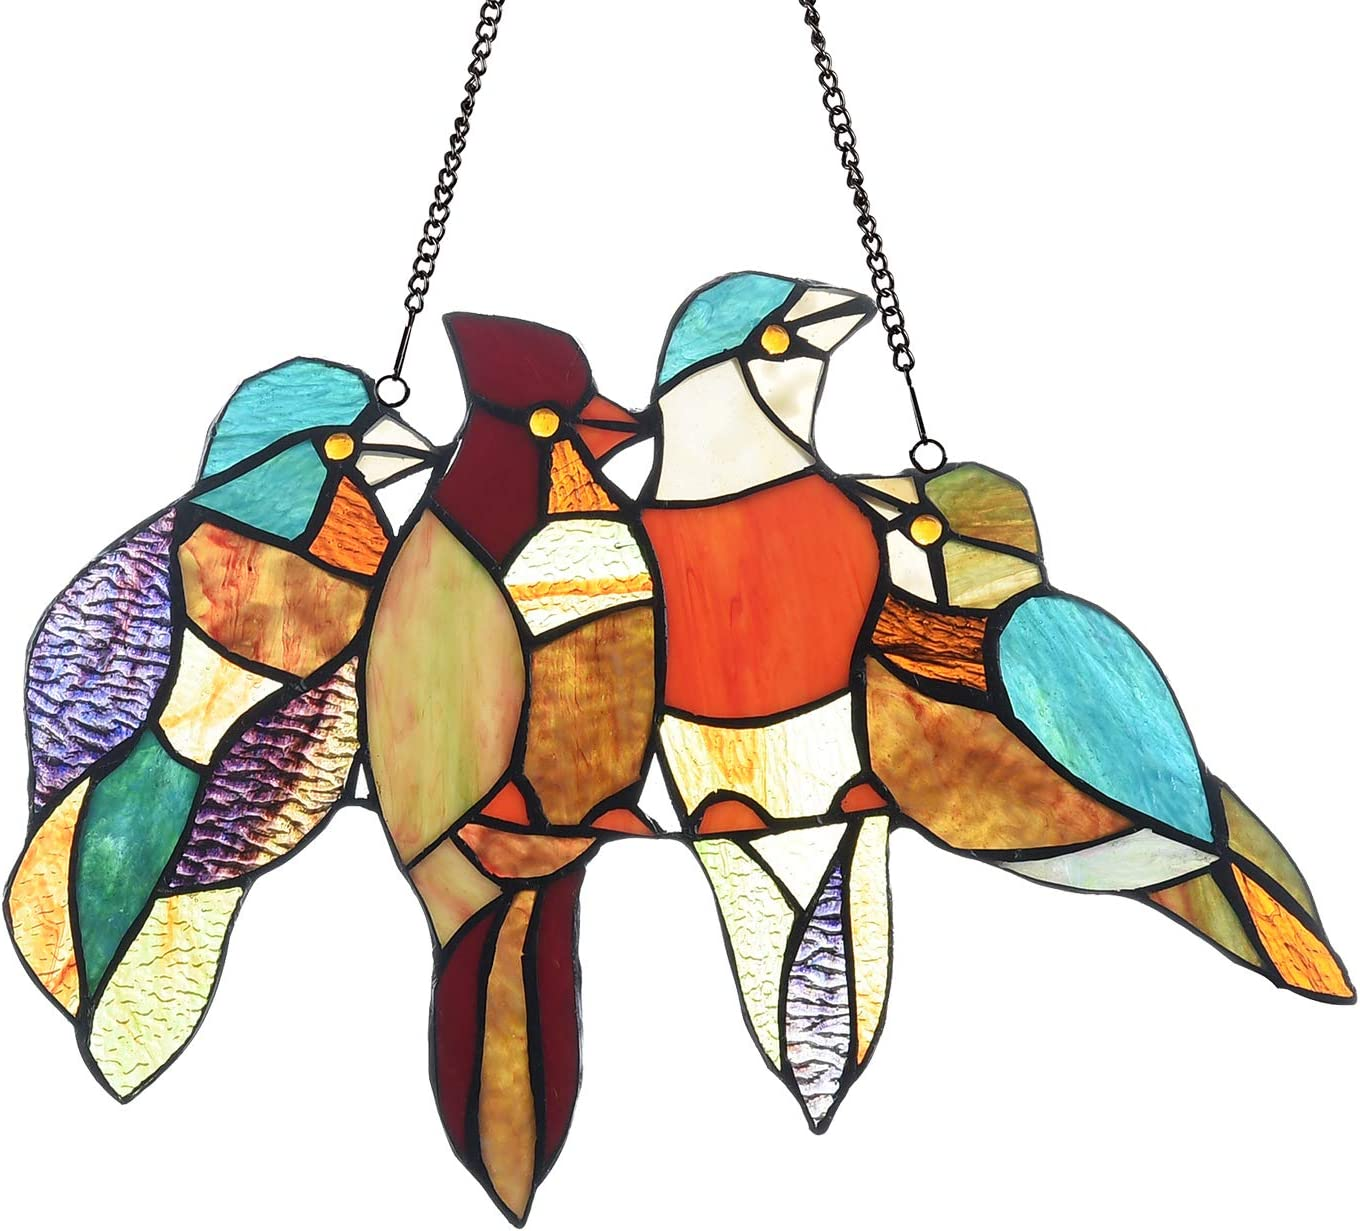 COTOSS Tiffany Stained Glass Window Hangings, 4 Birds on a Wire Stained Glass, Stained Glass Panels, Handcrafted Home Décor, Window Treatments, Art Glass Panel